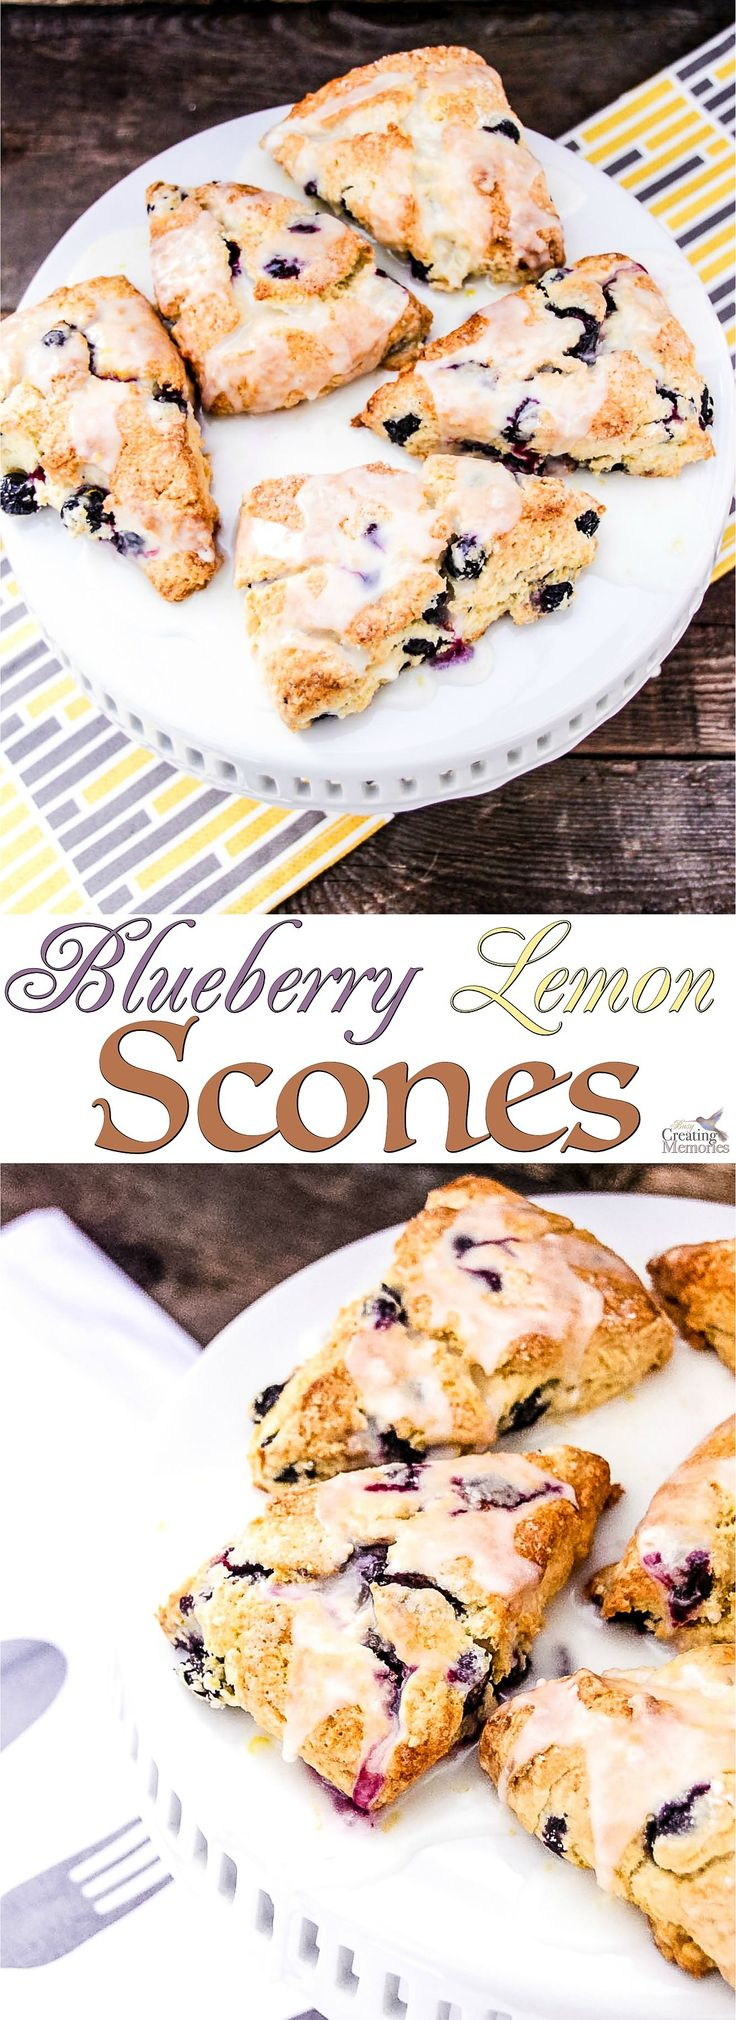 Experience perfection in a bite! Try this easy to follow Blueberry Lemon Scone Recipe! A perfect addition to brunch, afternoon tea party…